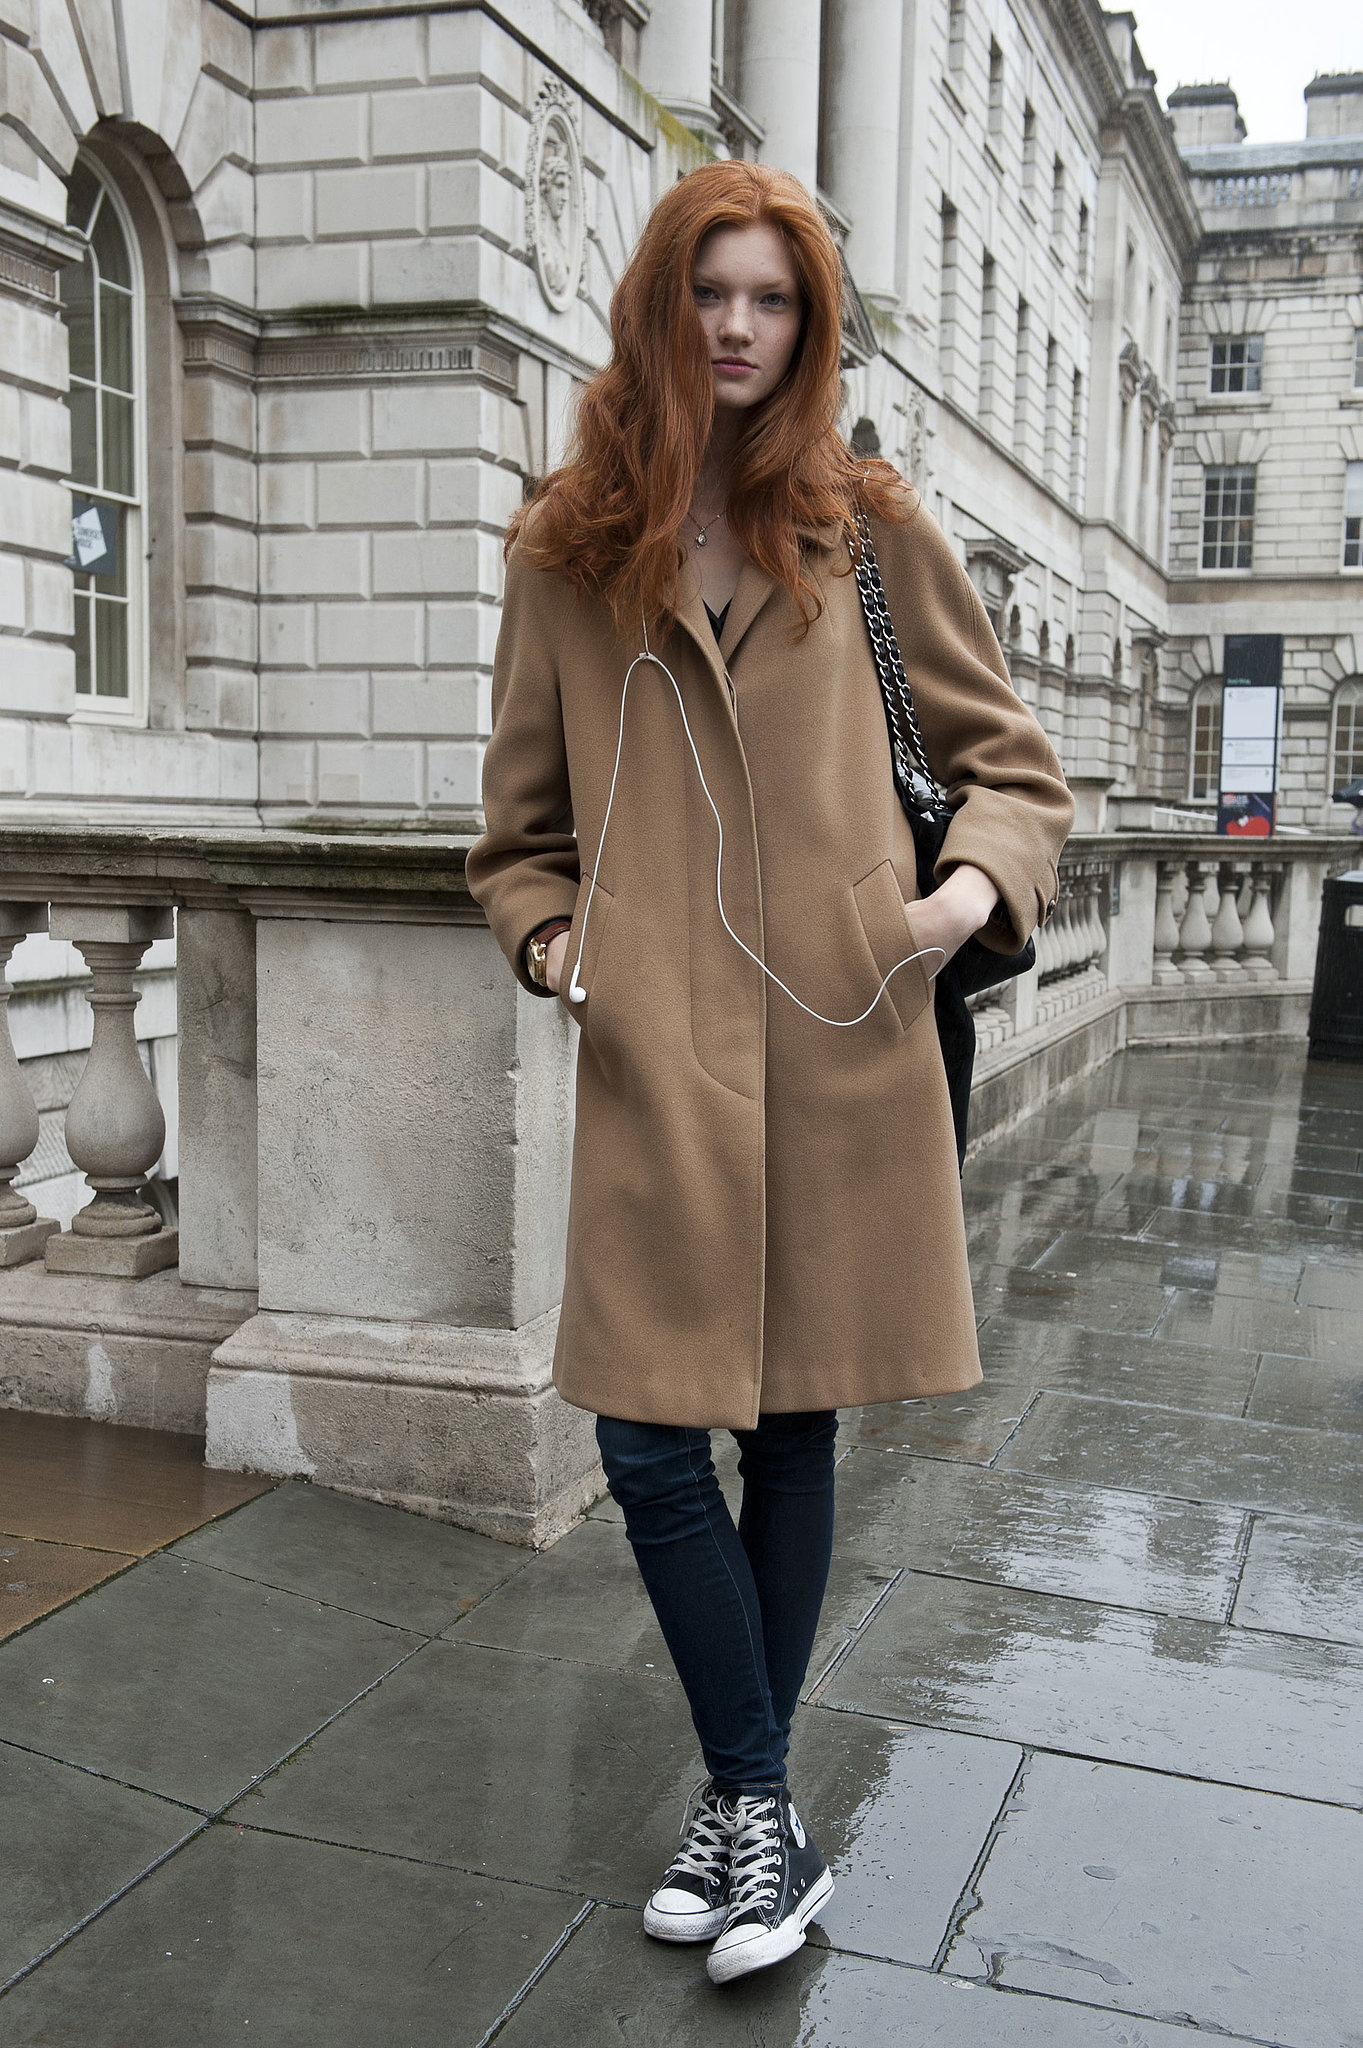 A model style citizen in a classic camel coat.